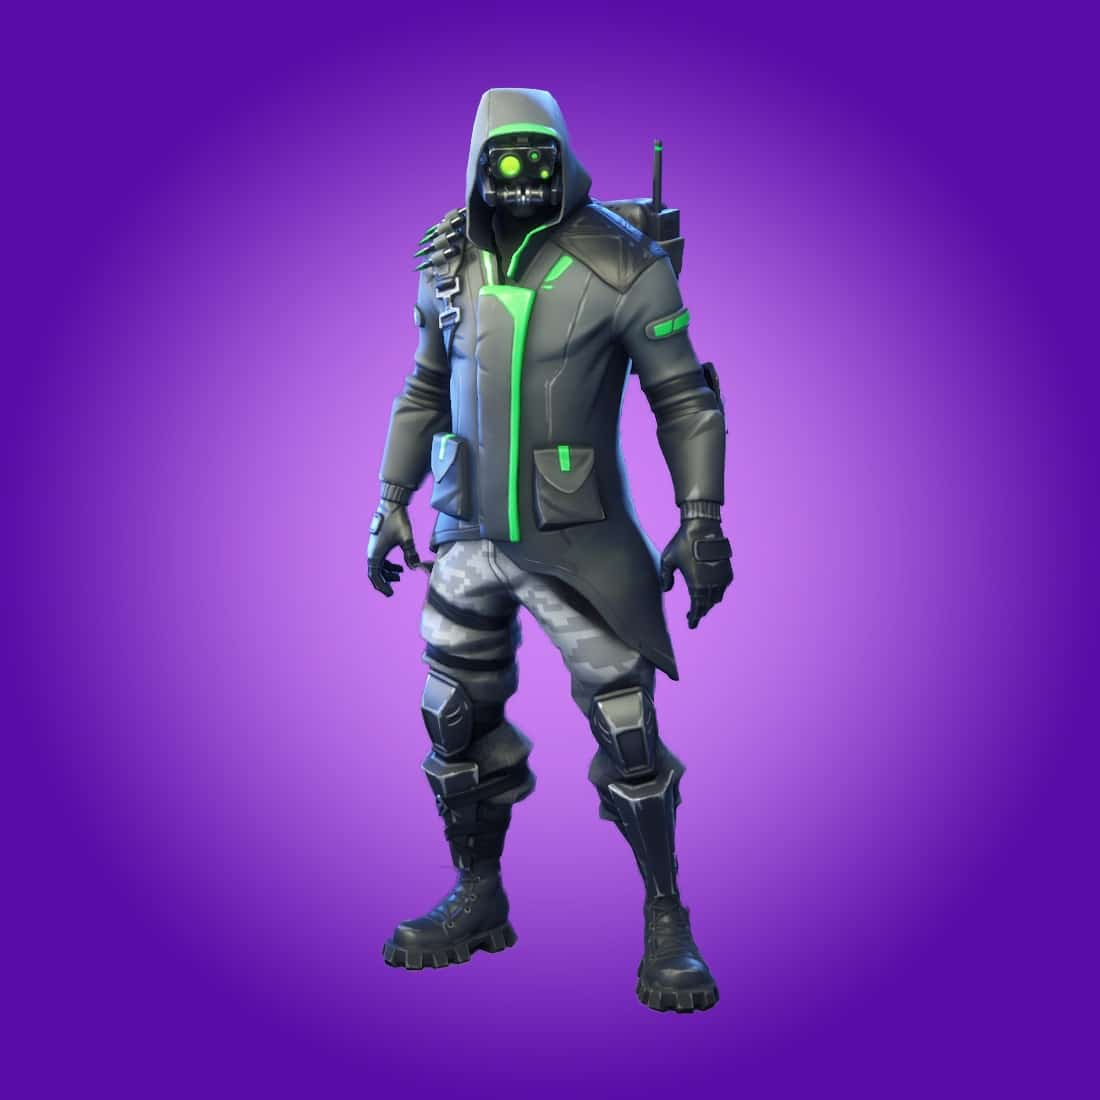 All Fortnite Characters & Skins June 2020 - Tech Centurion